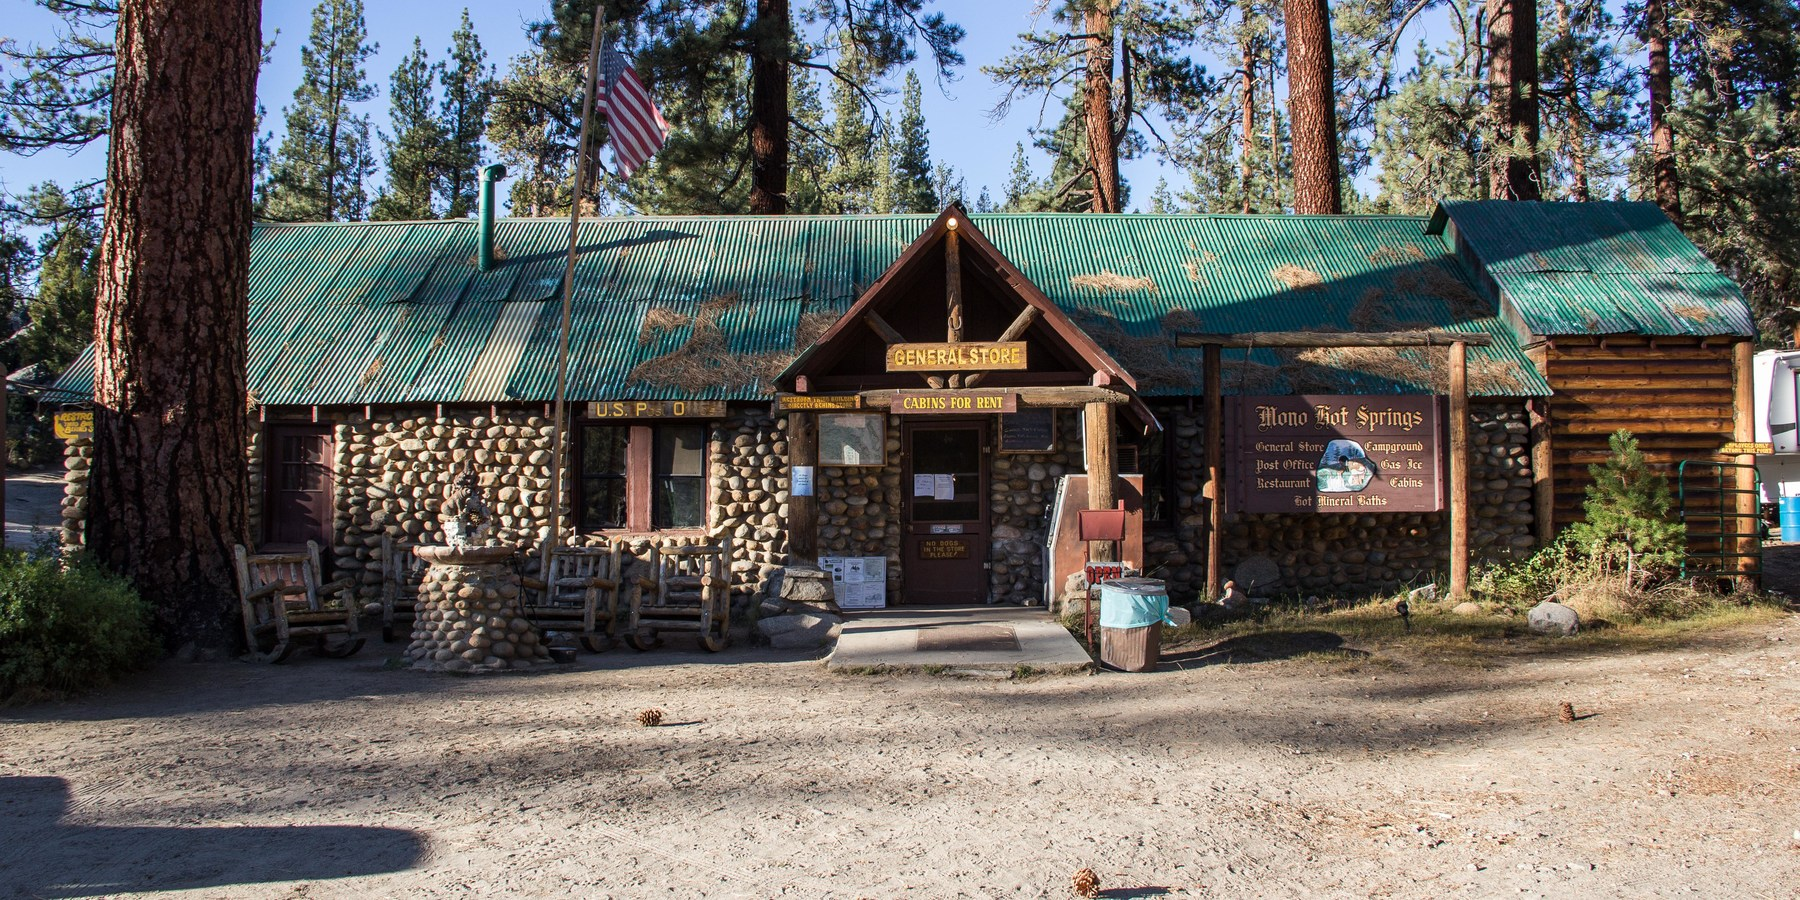 mono hot springs dating site Mono hot springs campground in the sierra national forest complete information about campsites, reservations, facilities, fees, campground map, nearby attractions, and much more.